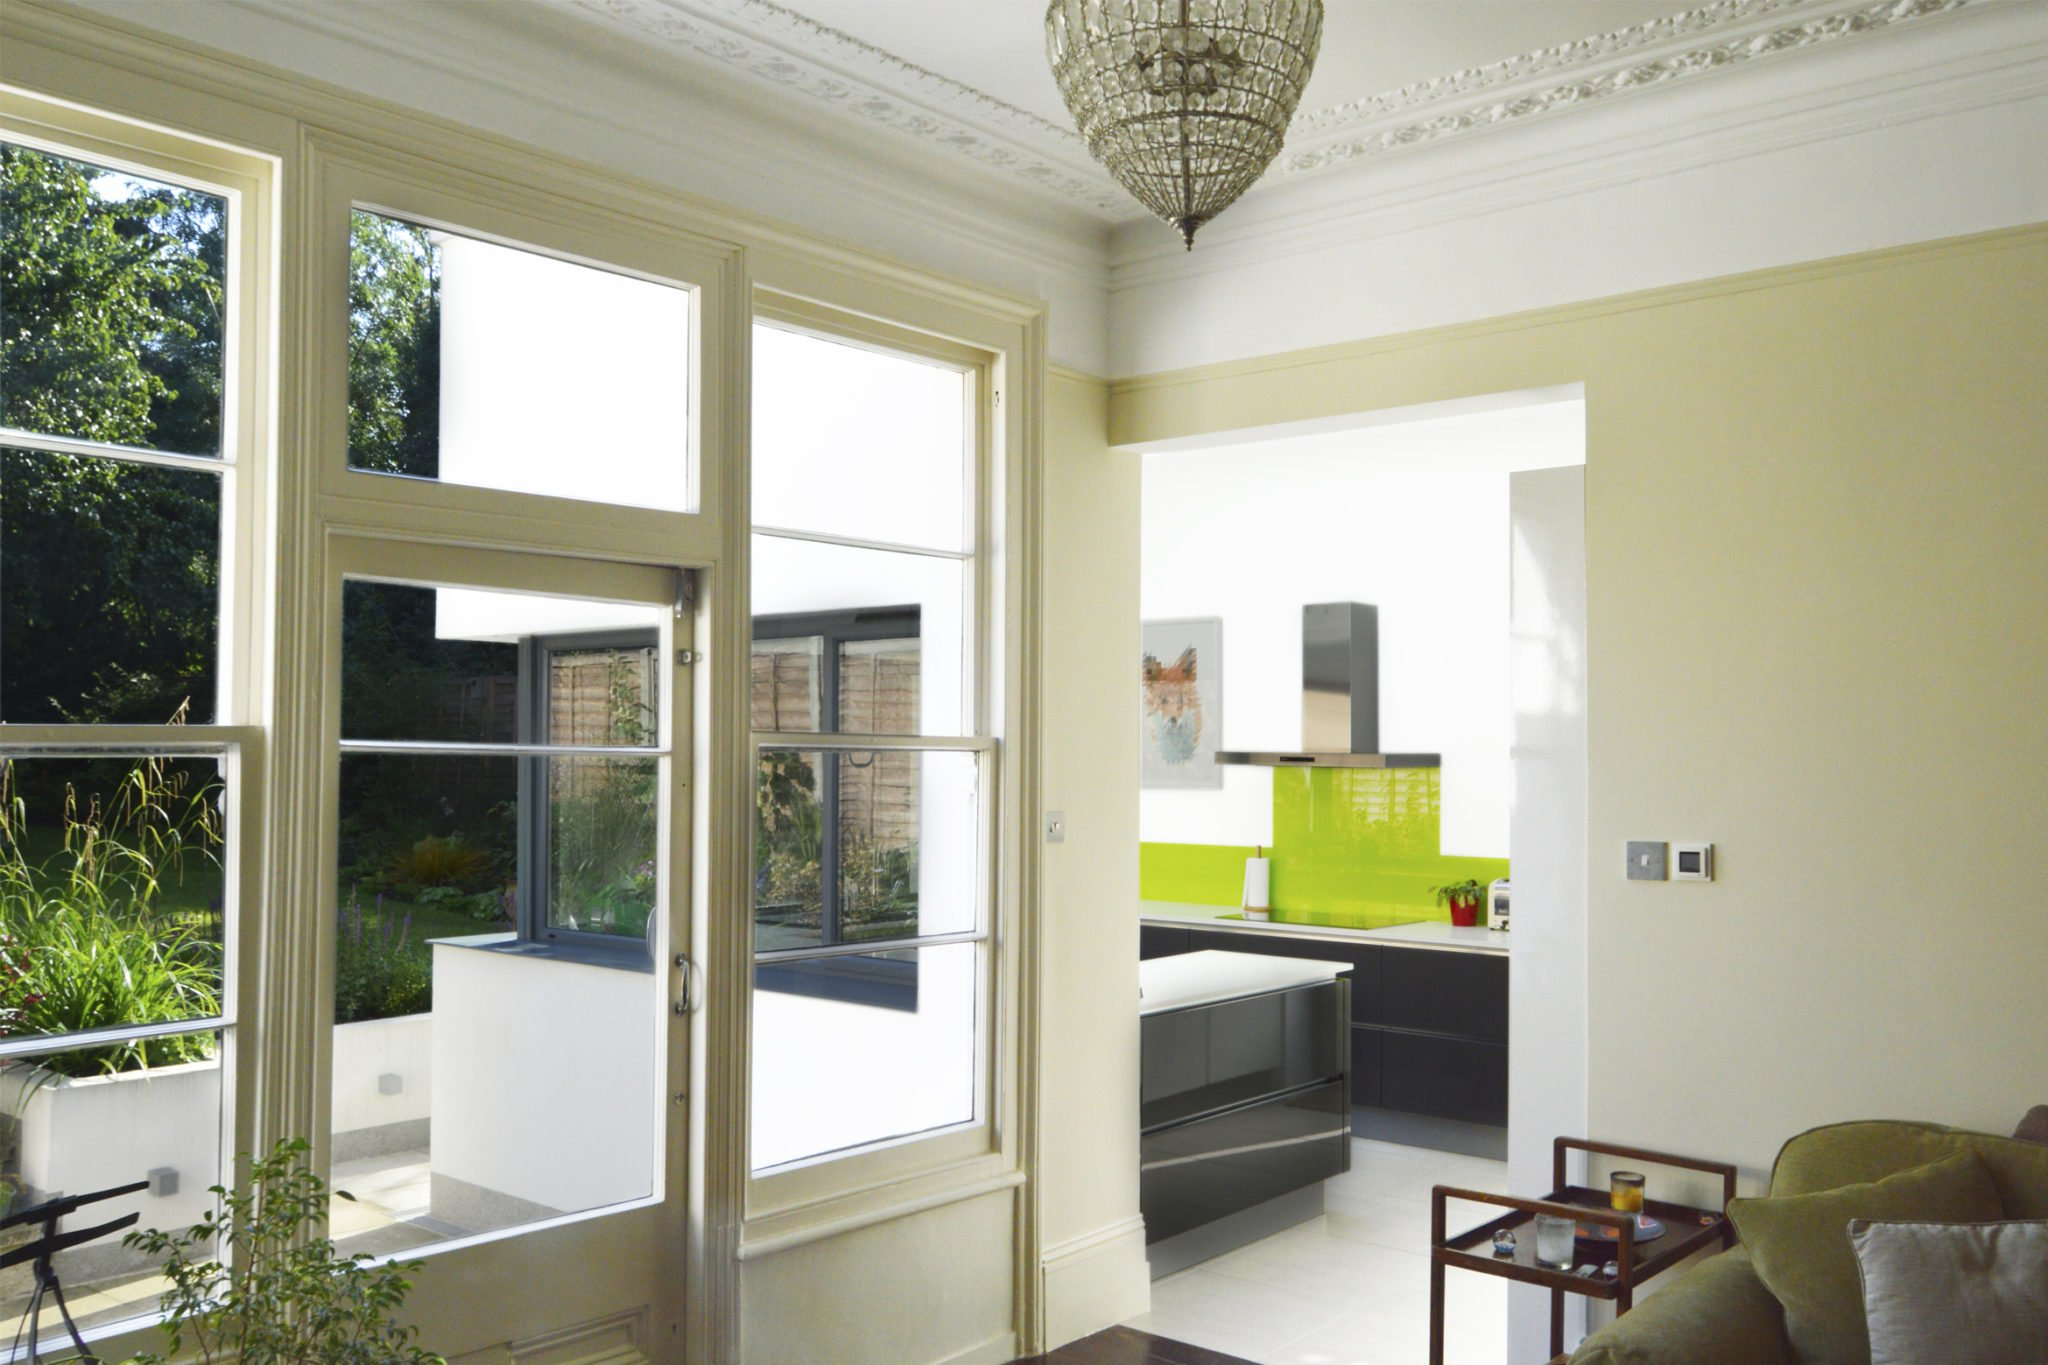 architect-designed-kilburn-brent-nw2-kitchen-house-extension ...